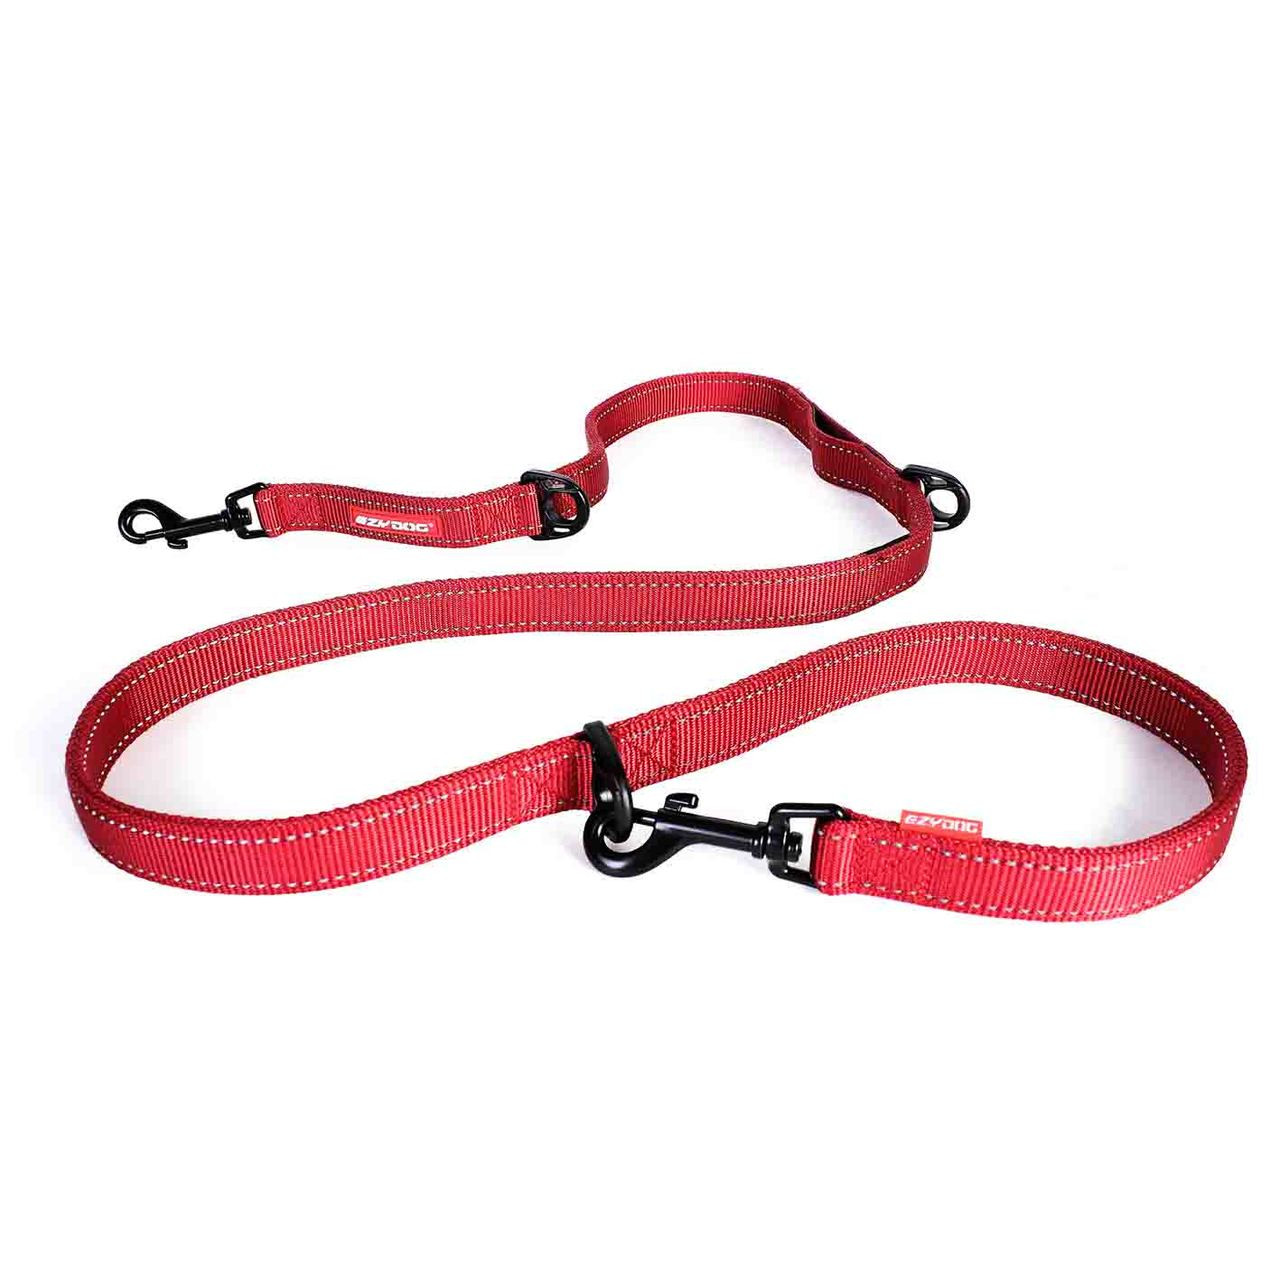 Human Dog Collars For Sale